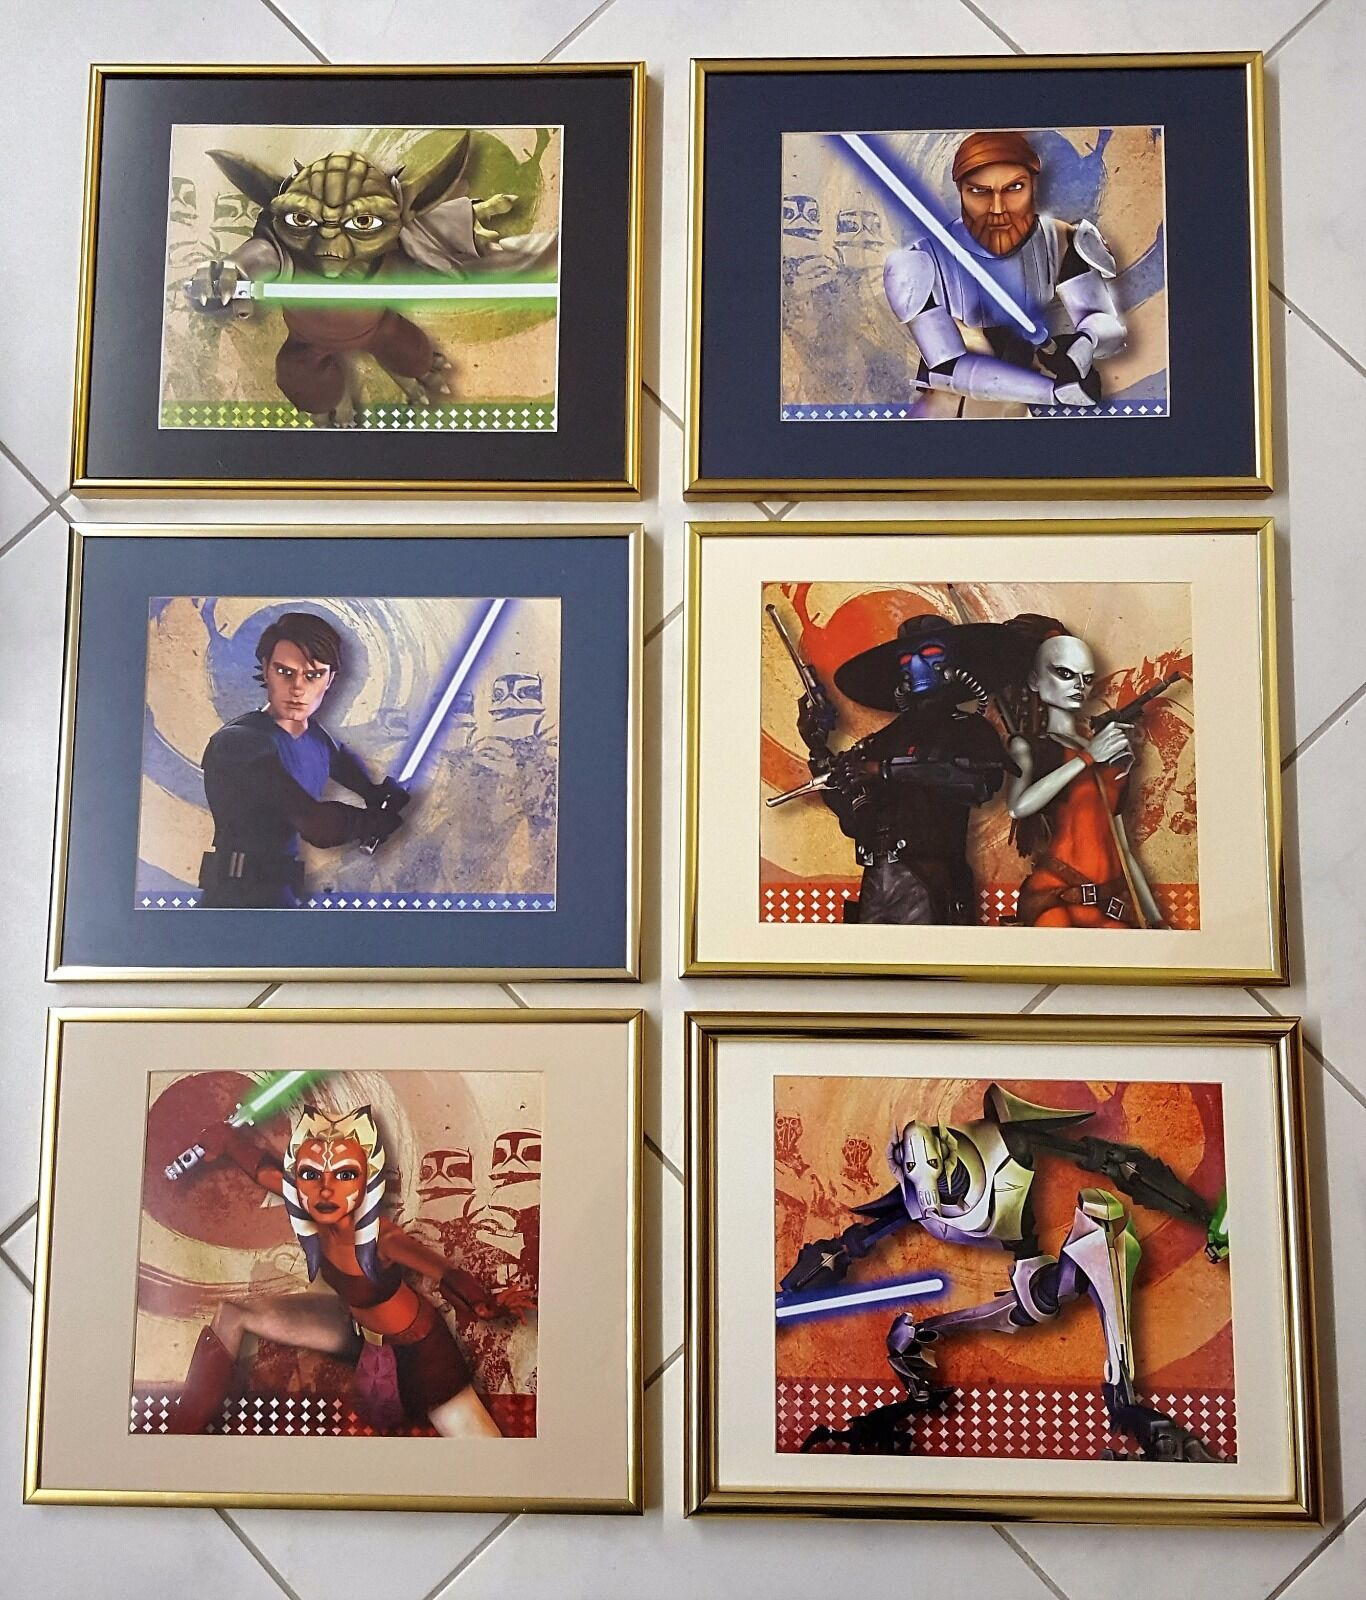 Star Wars Clone Wars Framed Artwork  Lot of 10 pieces  with Art, Mats & Frames